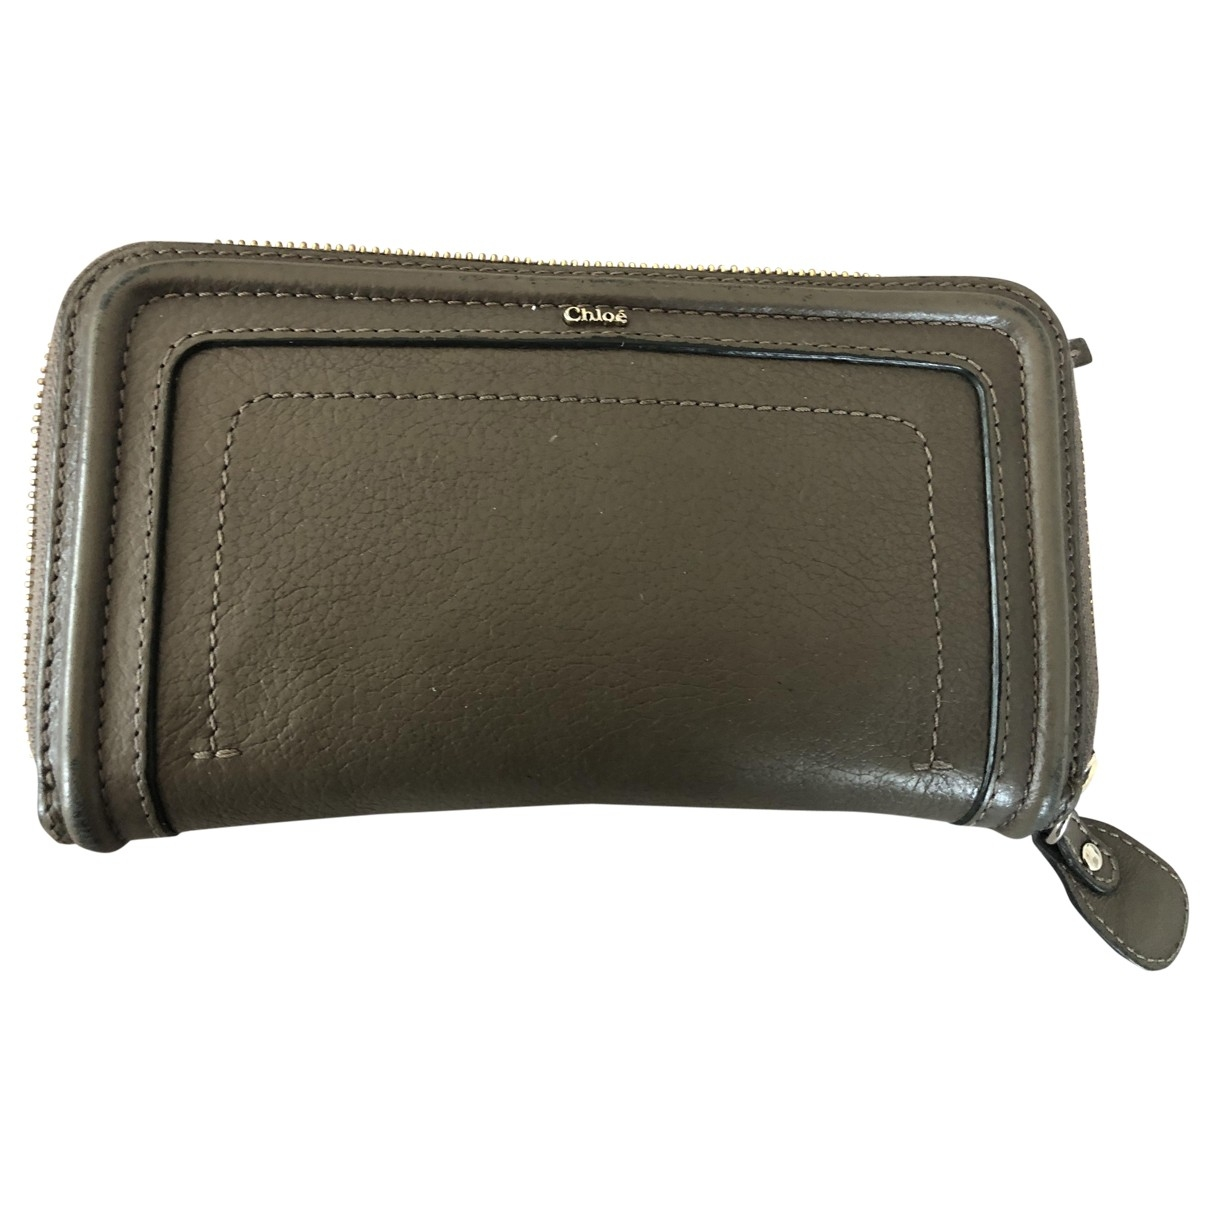 Chloé Marcie Leather Purses, wallet & cases for Women \N